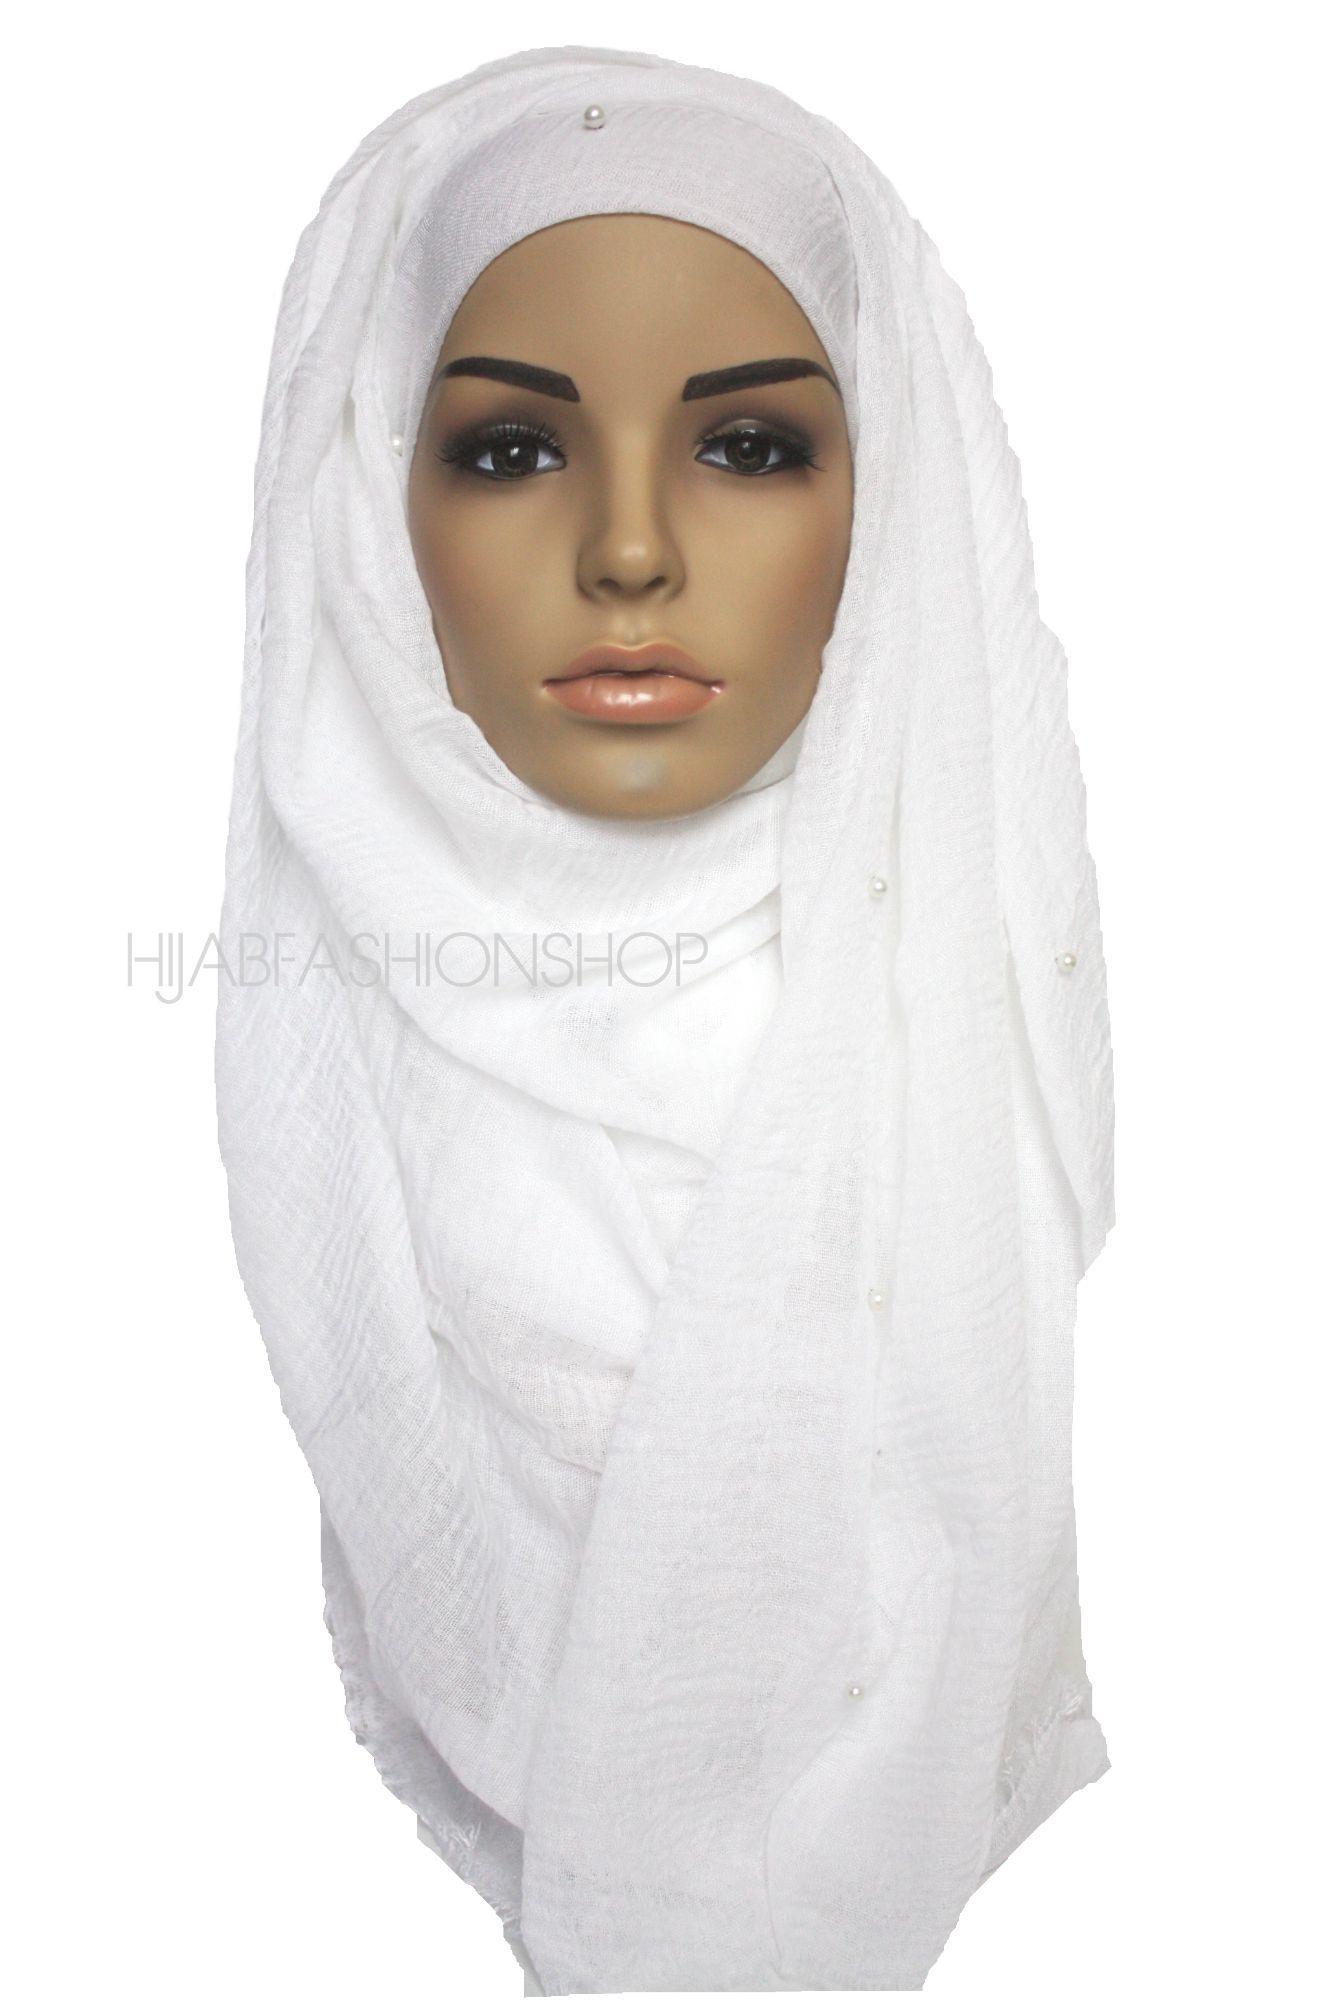 white crimp crinkle hijab with pearls